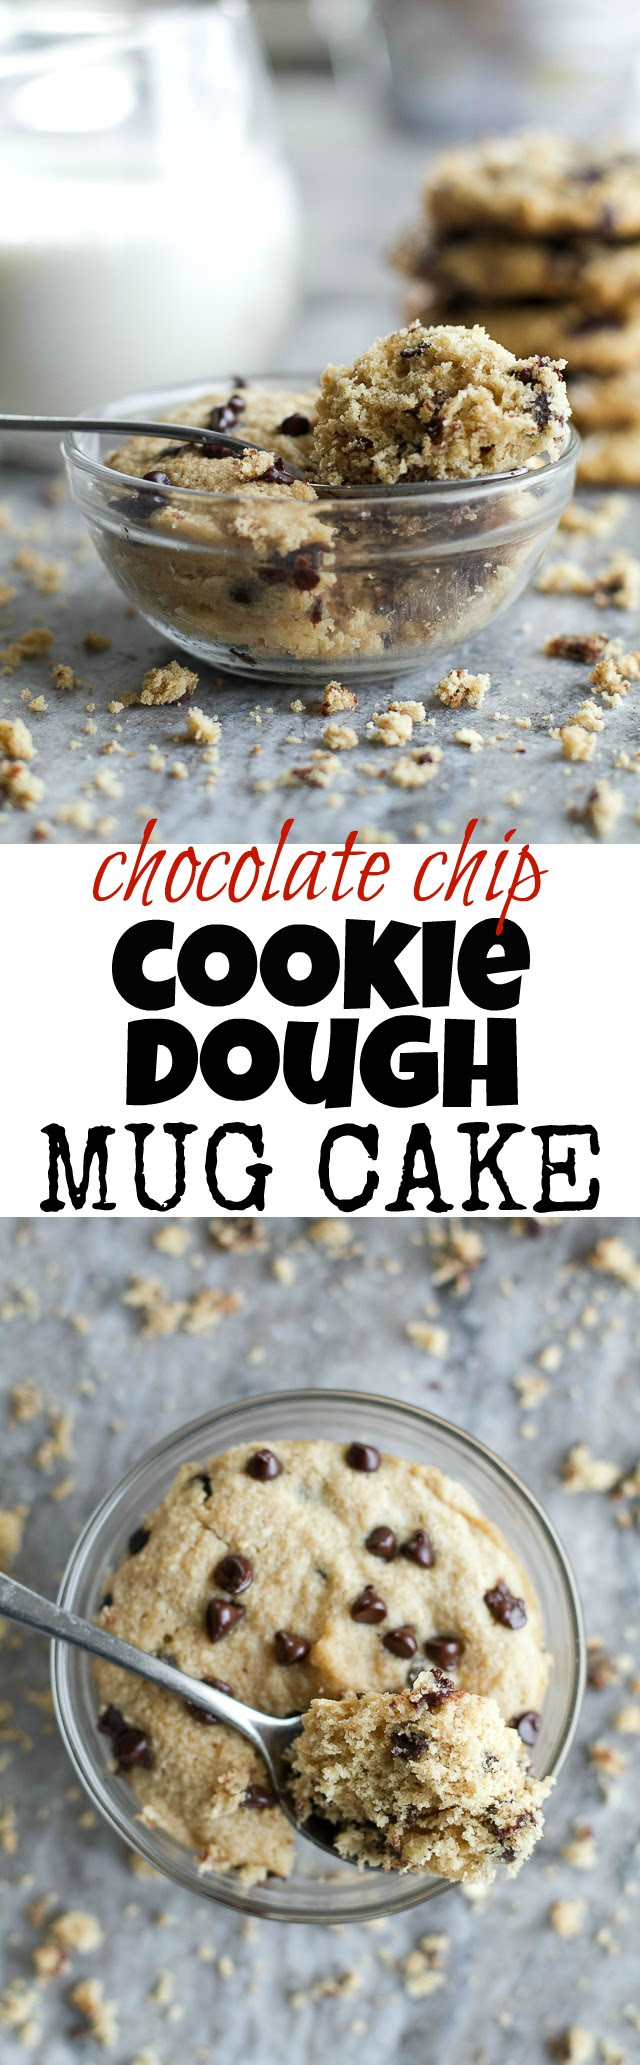 Chocolate Chip Cookie Dough Mug Cake | running with spoons